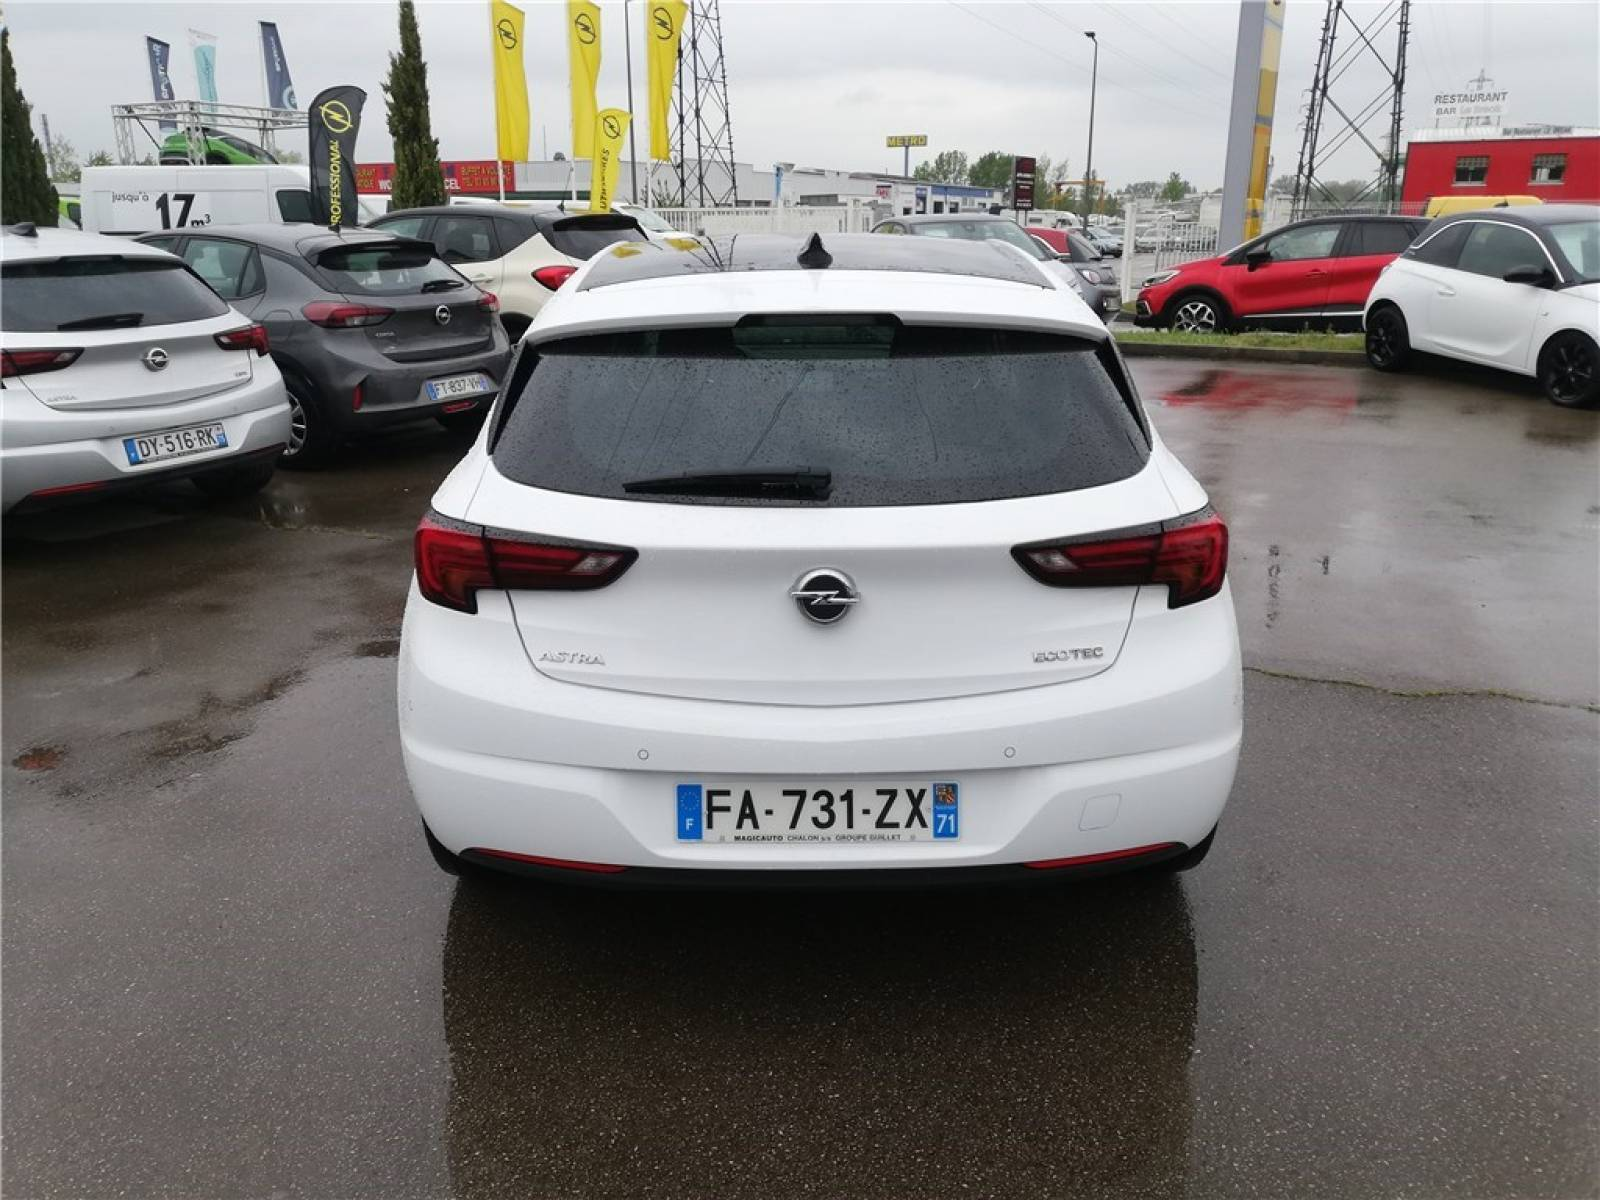 OPEL Astra 1.0 Turbo 105 ch ECOTEC Start/Stop - véhicule d'occasion - Groupe Guillet - Opel Magicauto - Chalon-sur-Saône - 71380 - Saint-Marcel - 6